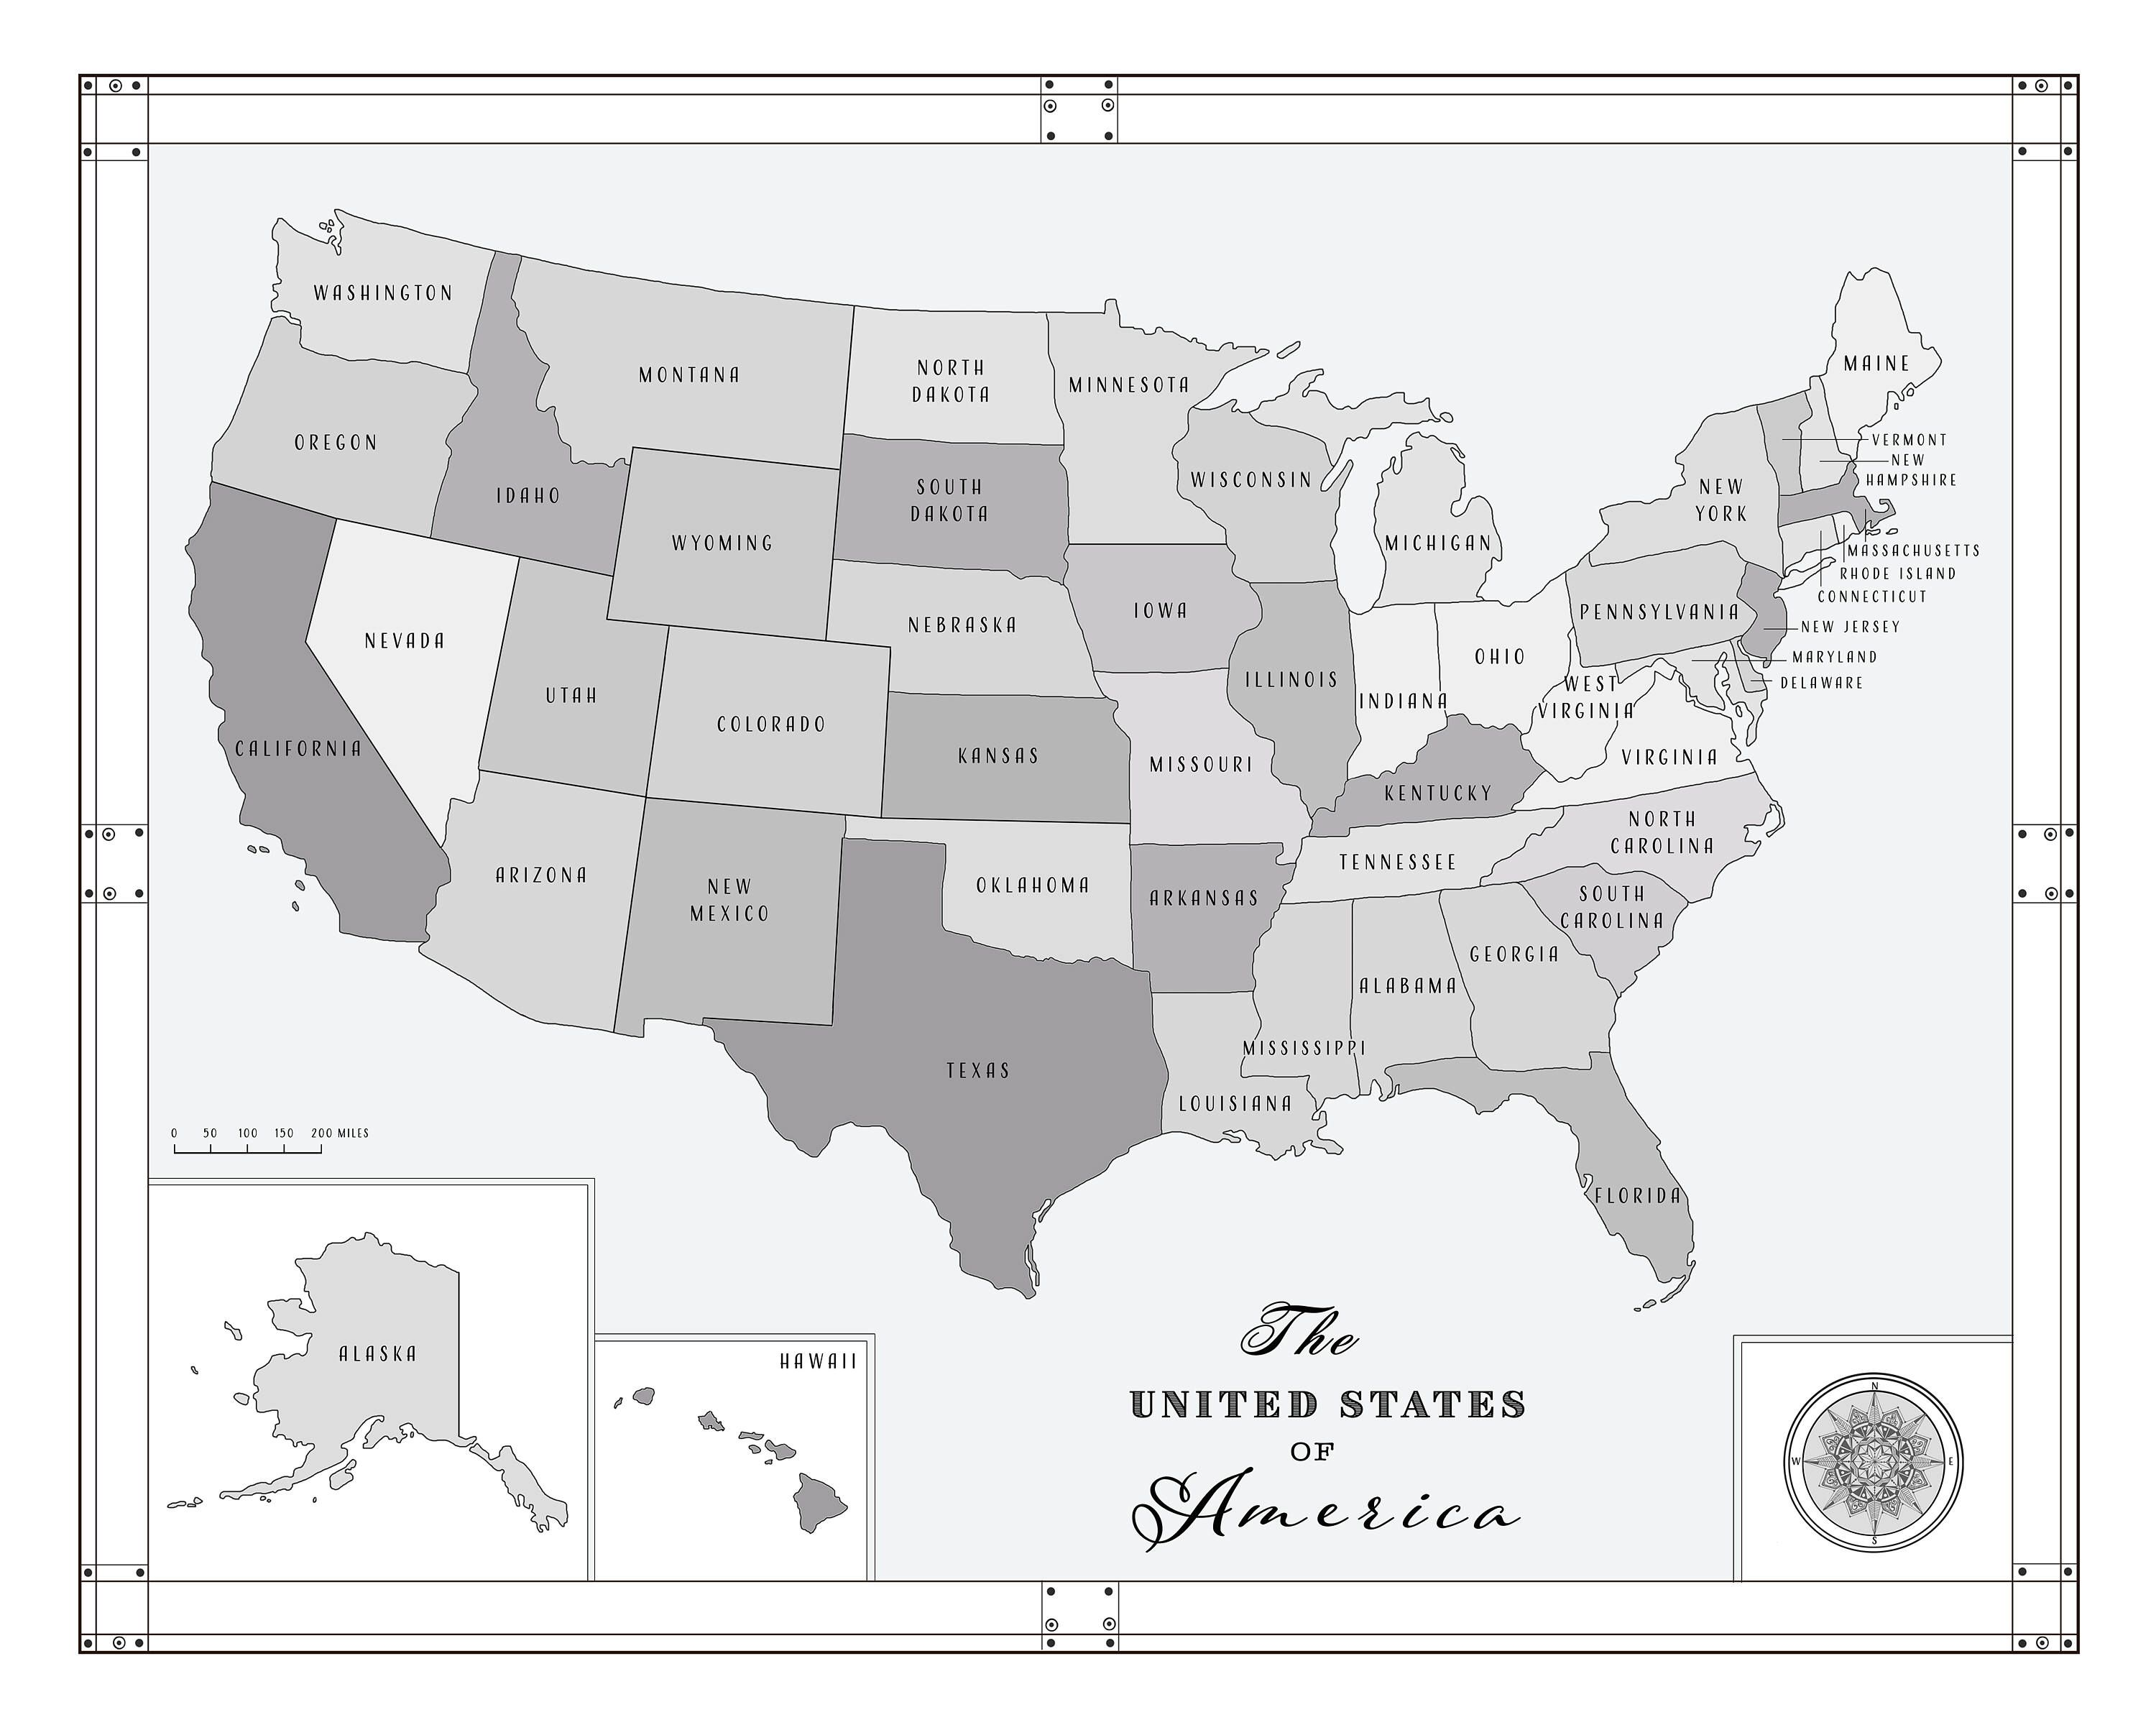 Pin by Kokua Design Company on USA Maps | United states map, Black ...